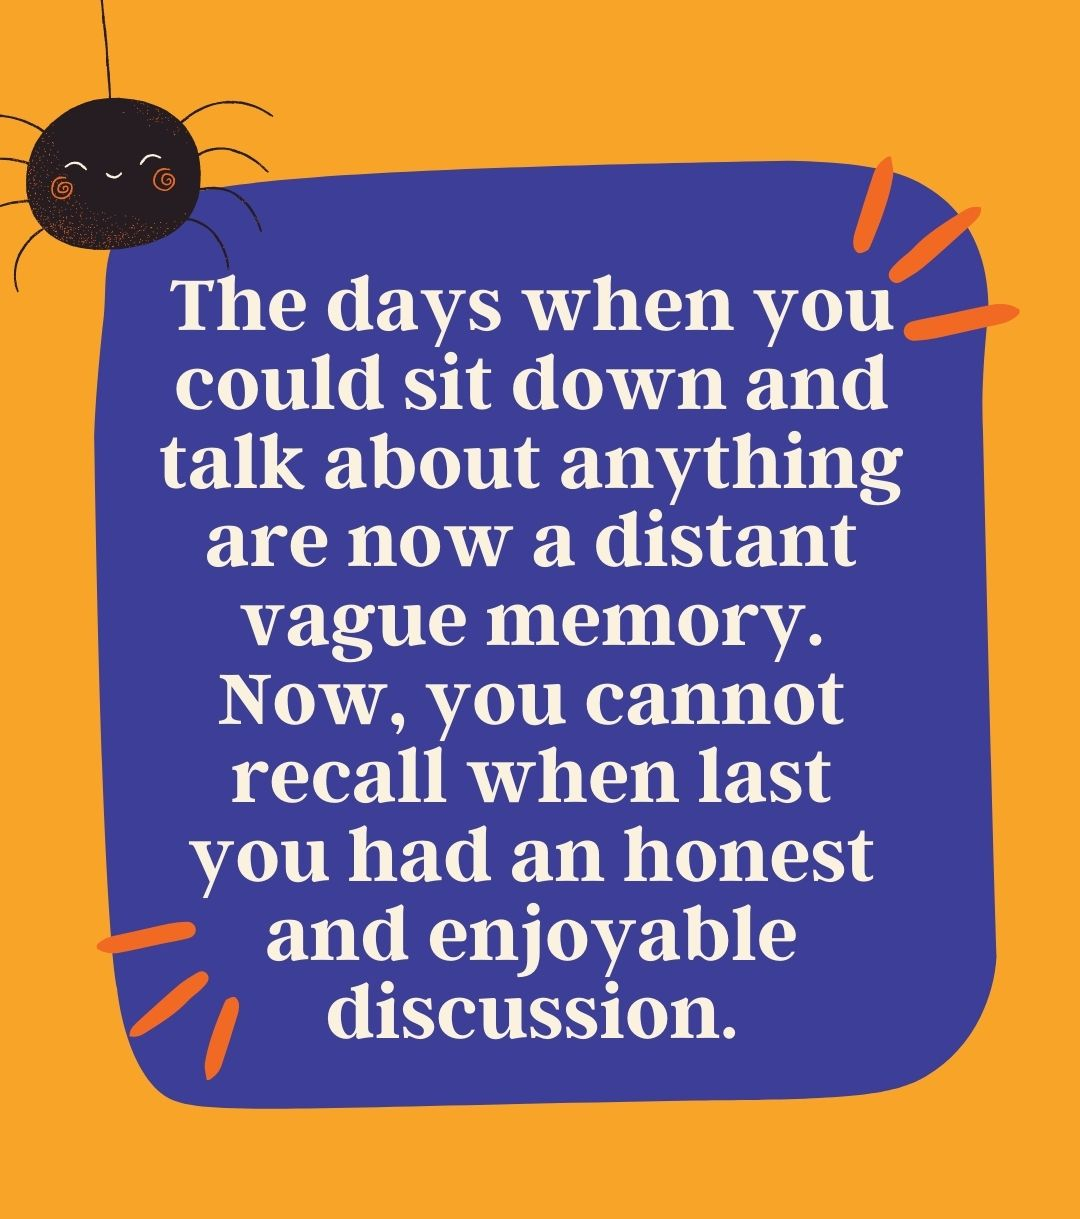 The days when you could sit down and talk about anything are now a distant vague memory. Now, you cannot recall when last you had an honest and enjoyable discussion.